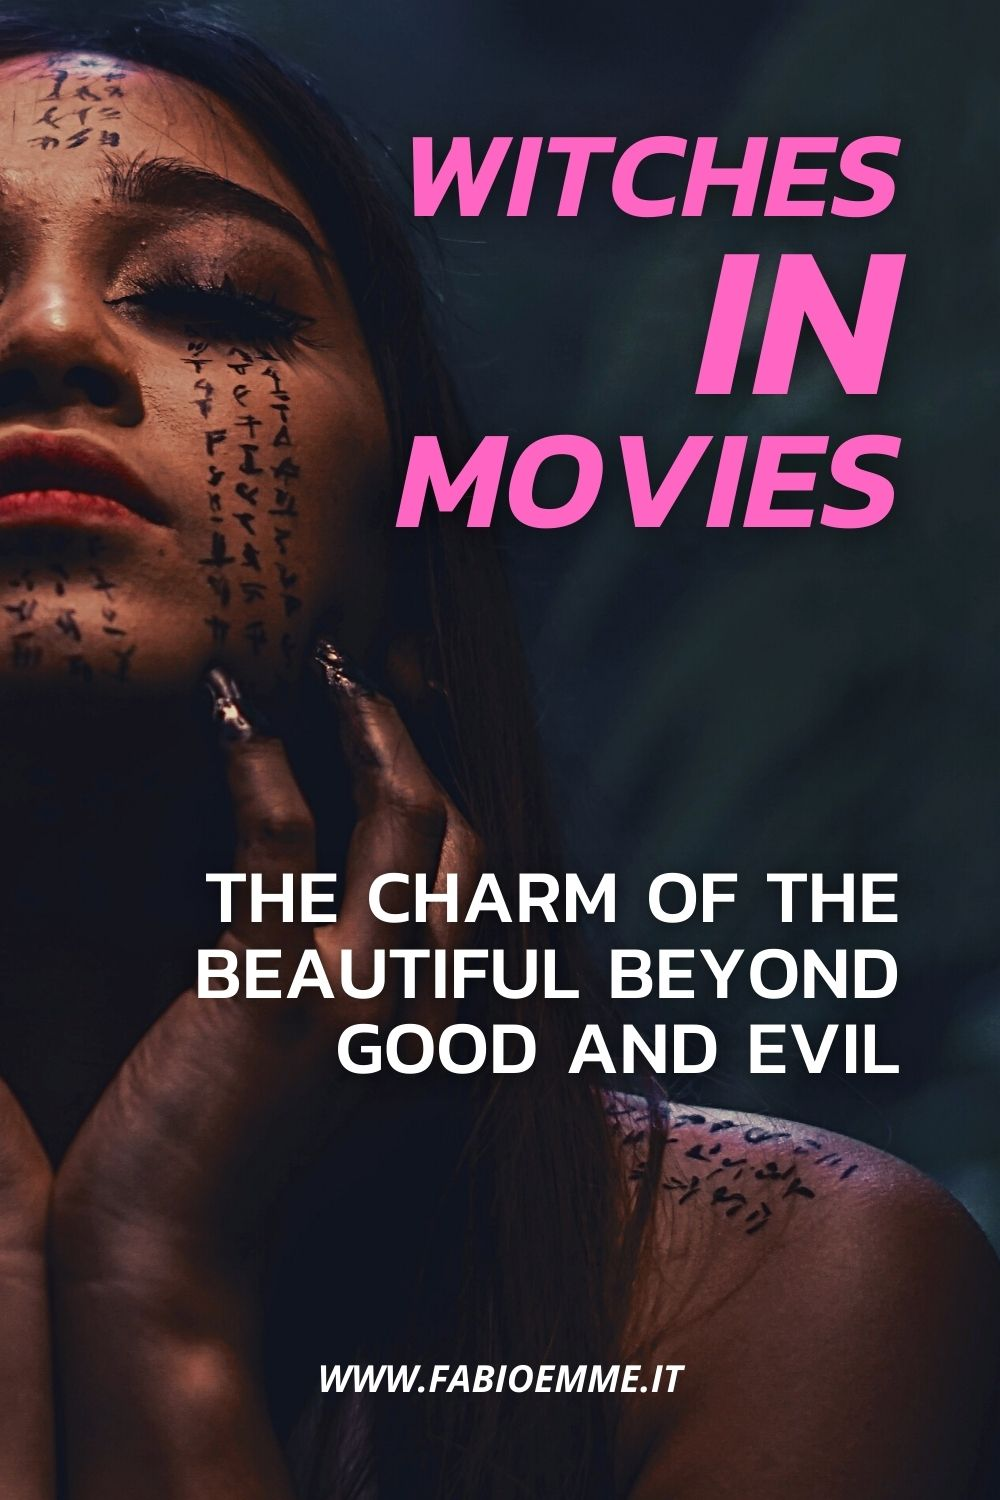 Fascinating and full of power, the witches in the movies have always posed as ambiguously irresistible characters in the film scene. #MOVIES